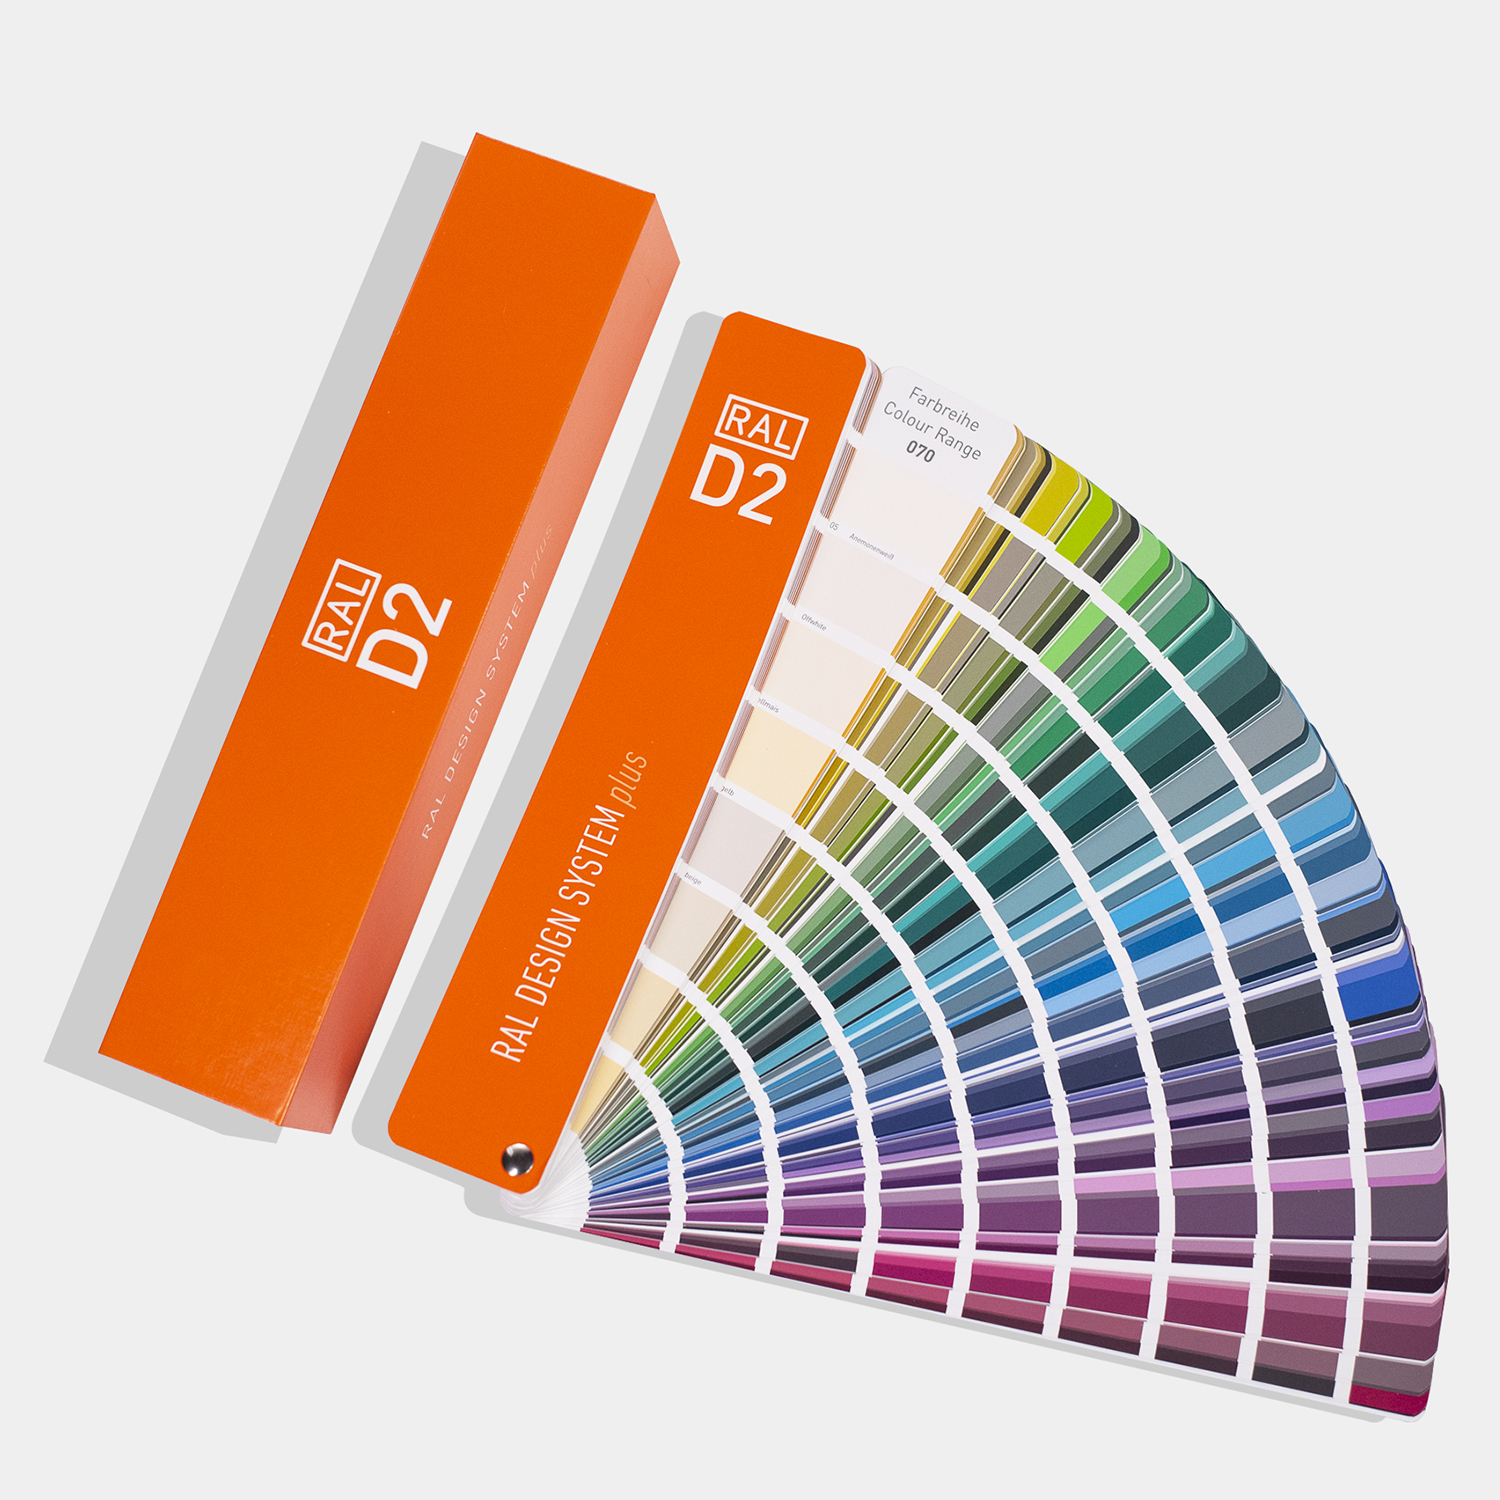 Usd 392 32 New Color Plus Ral Color Card Raul Color Card Standard Color Standard Color Card Ral D2 Designer Version Added 200 Colors Wholesale From China Online Shopping Buy Asian Products